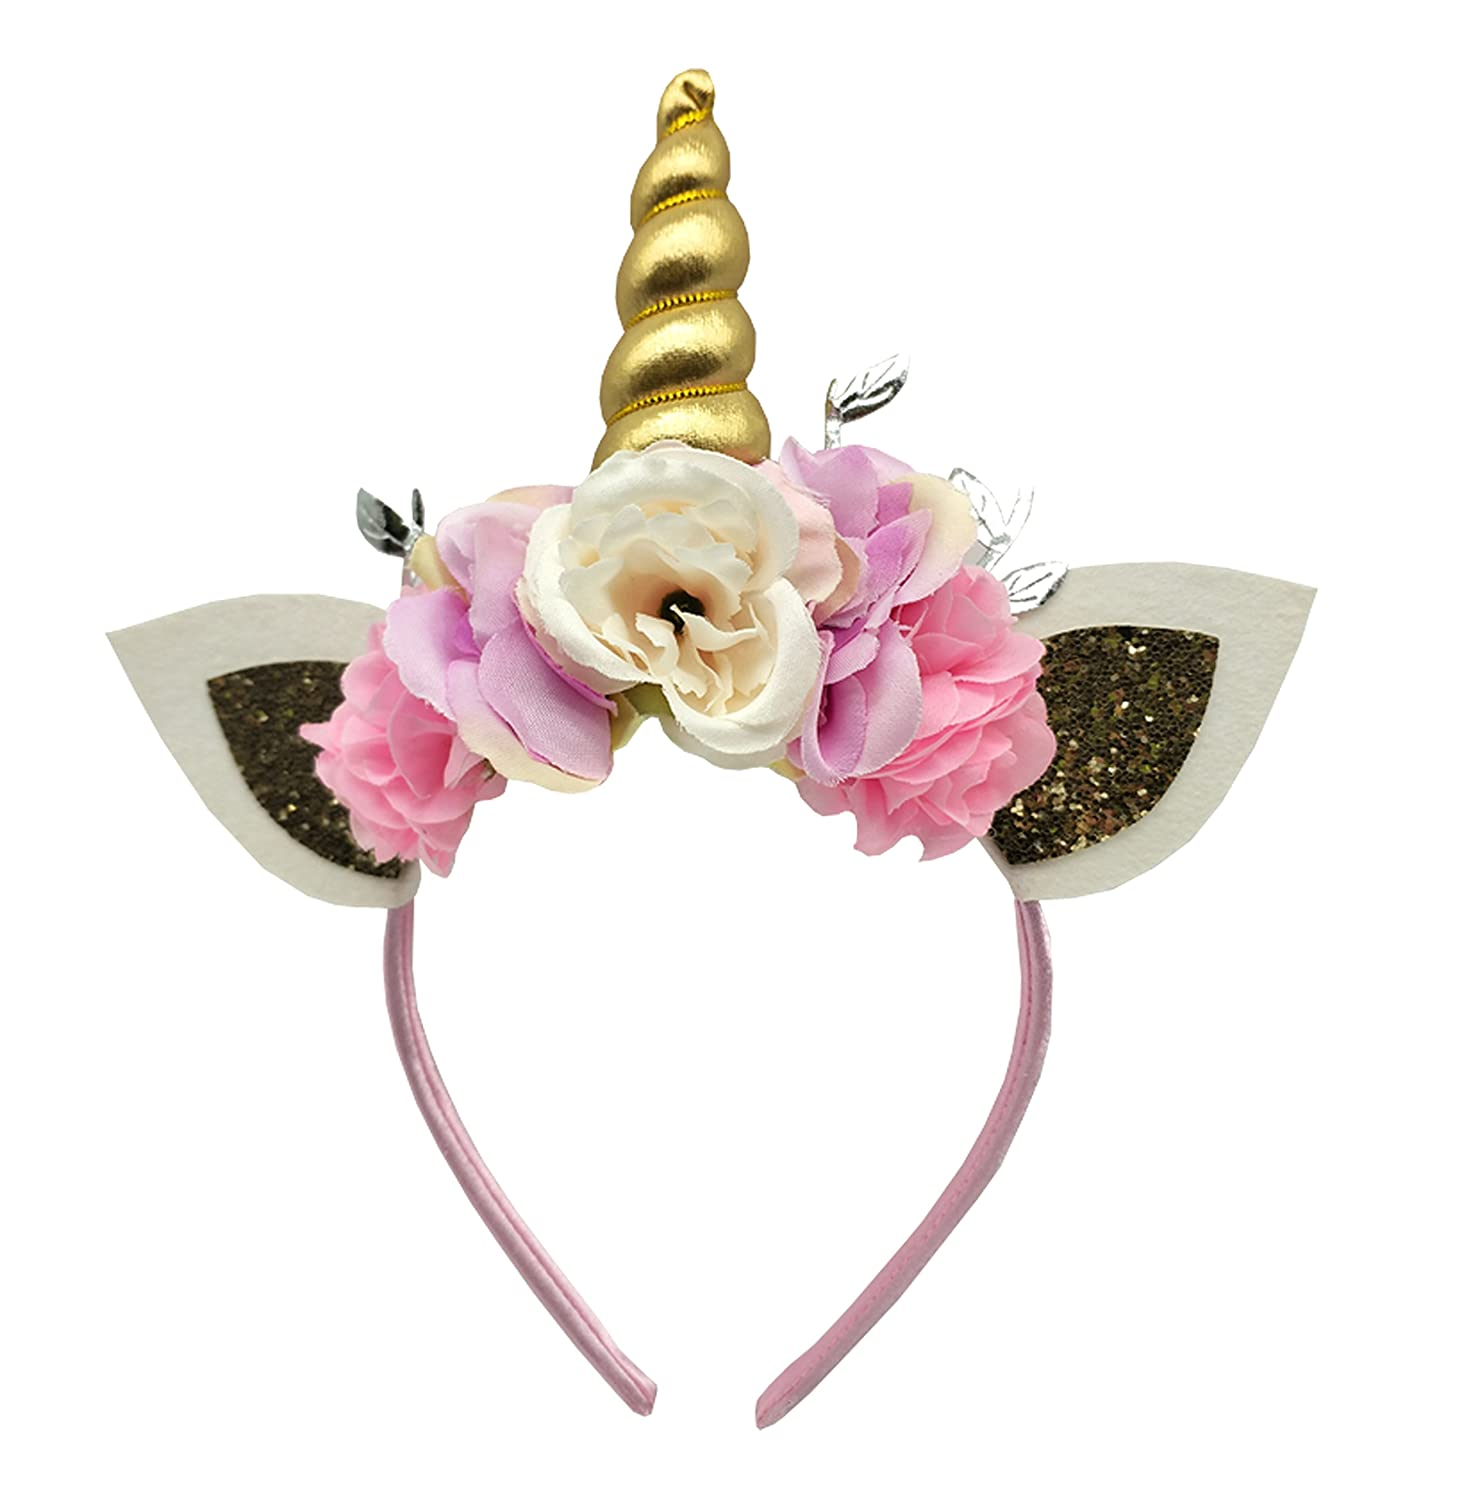 Amazon.com   Sanrich Flowers Unicorn Headband for Girls Baby Unicorn Theme  Parties Favors Birthday Gift Crown Headpiece(gold)   Beauty 3d1fa1f69bc